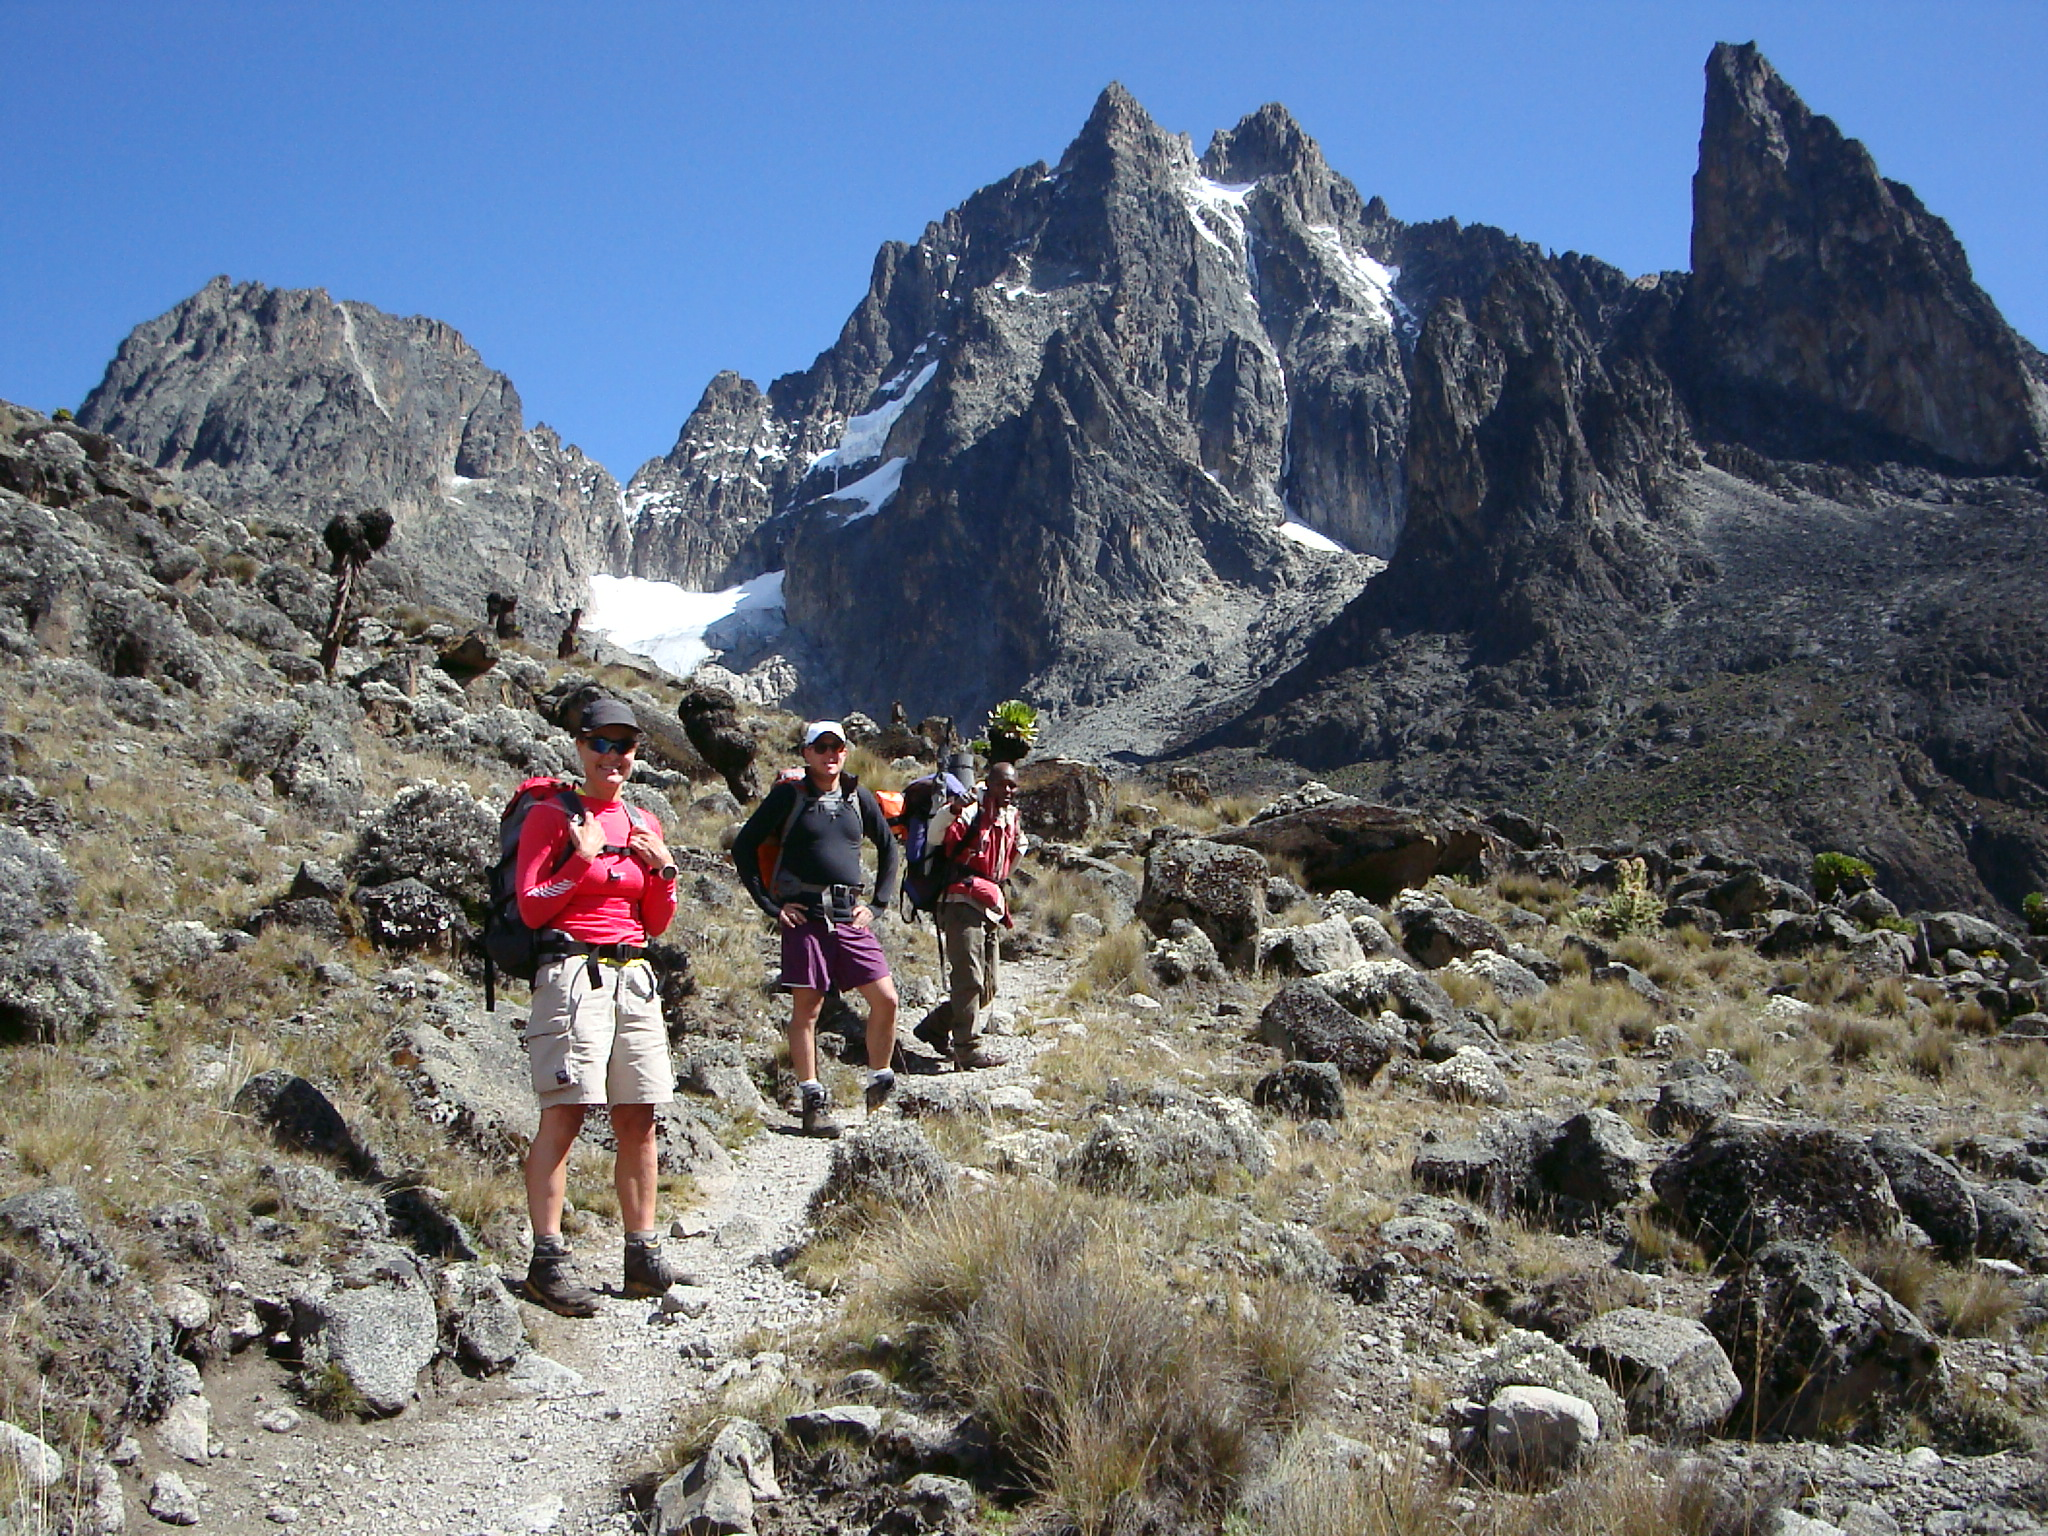 Trek in/out of Mt Kenya